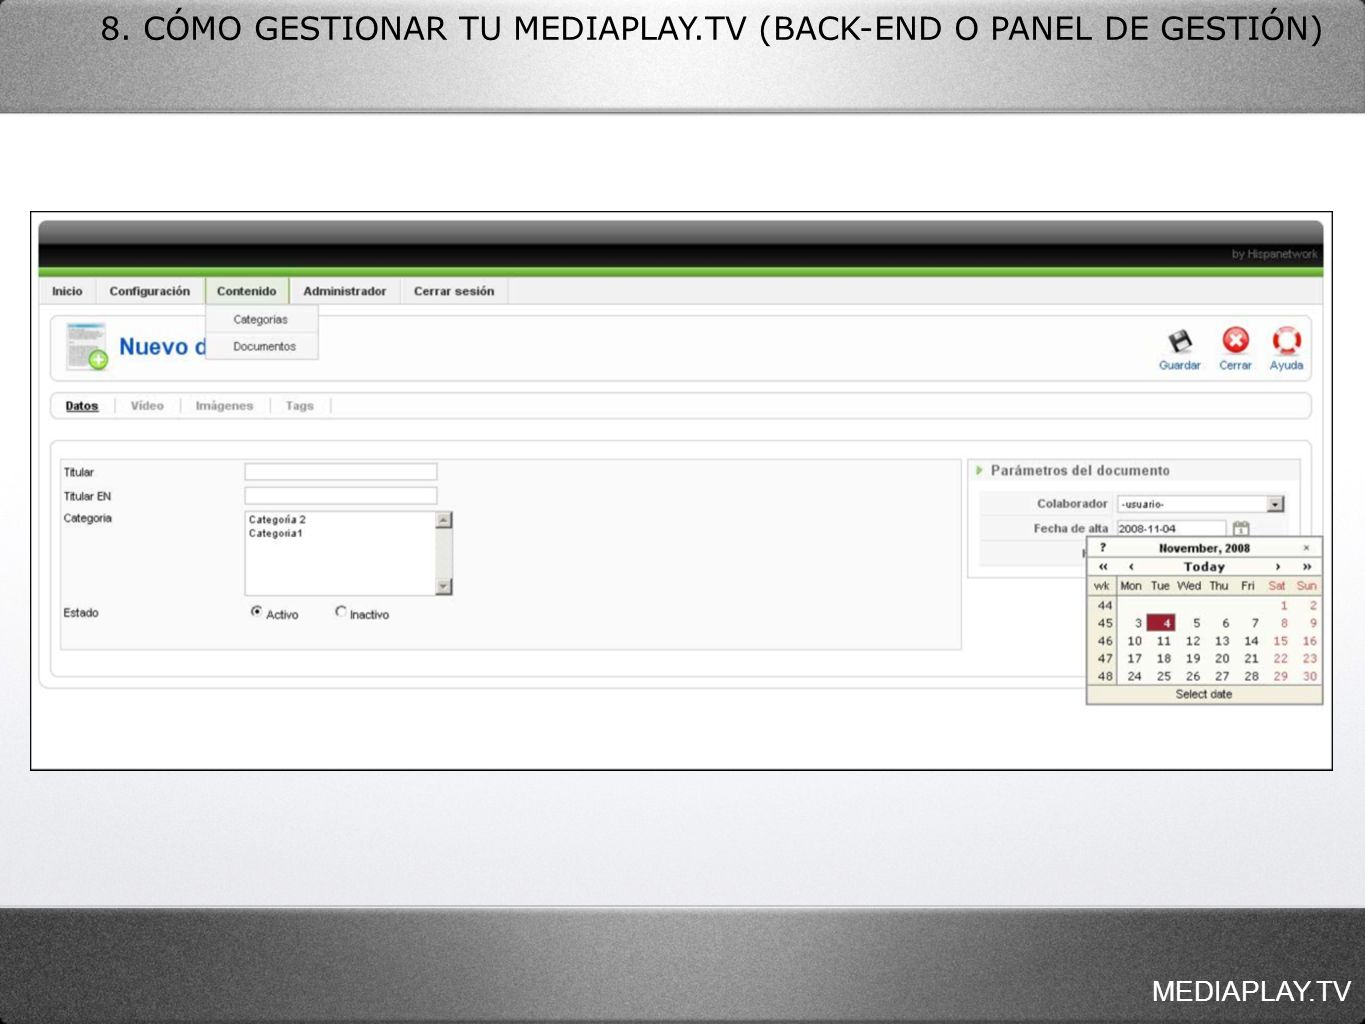 8. CÓMO GESTIONAR TU MEDIAPLAY.TV (BACK-END O PANEL DE GESTIÓN)